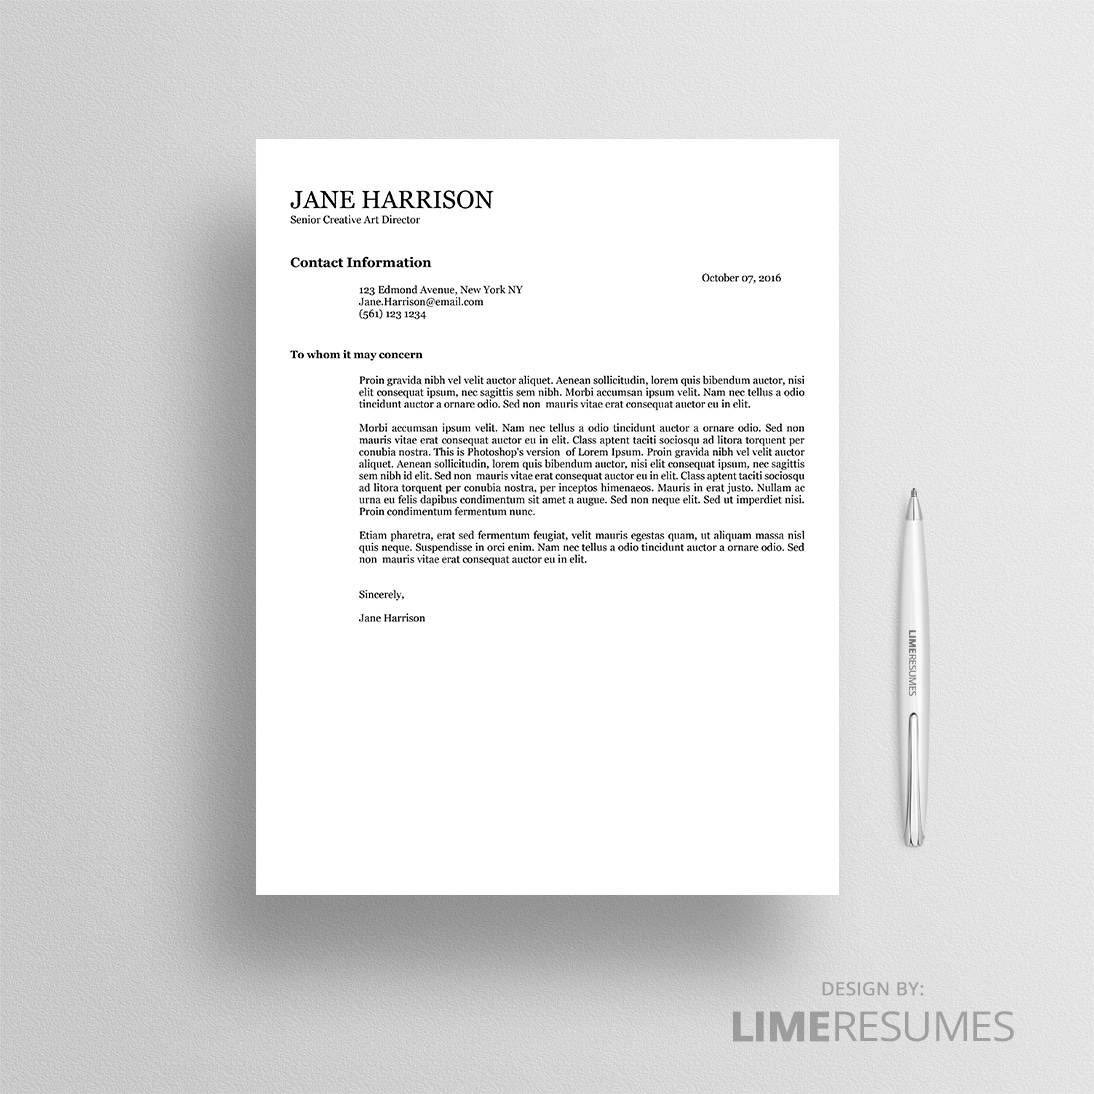 Cover letter ATS 04